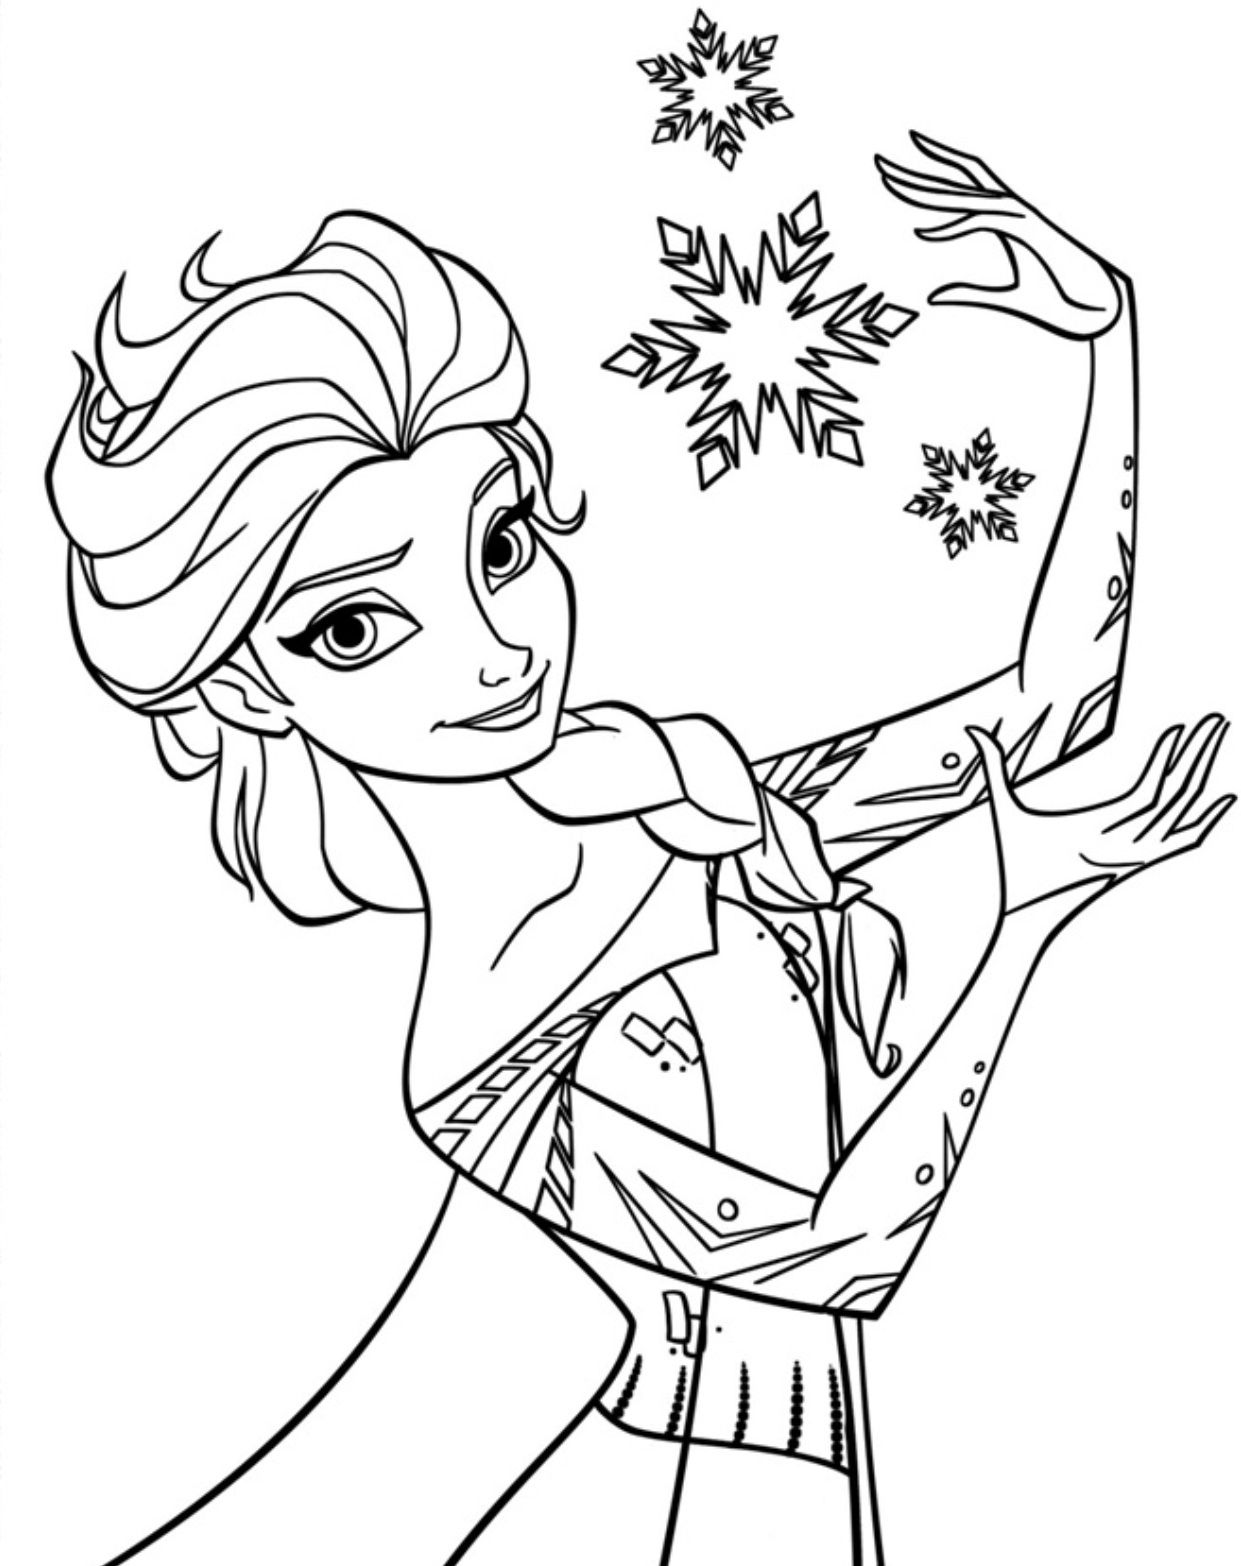 elsa coloring pages free Free Printable Elsa Coloring Pages for Kids | Elsa | Pinterest  elsa coloring pages free